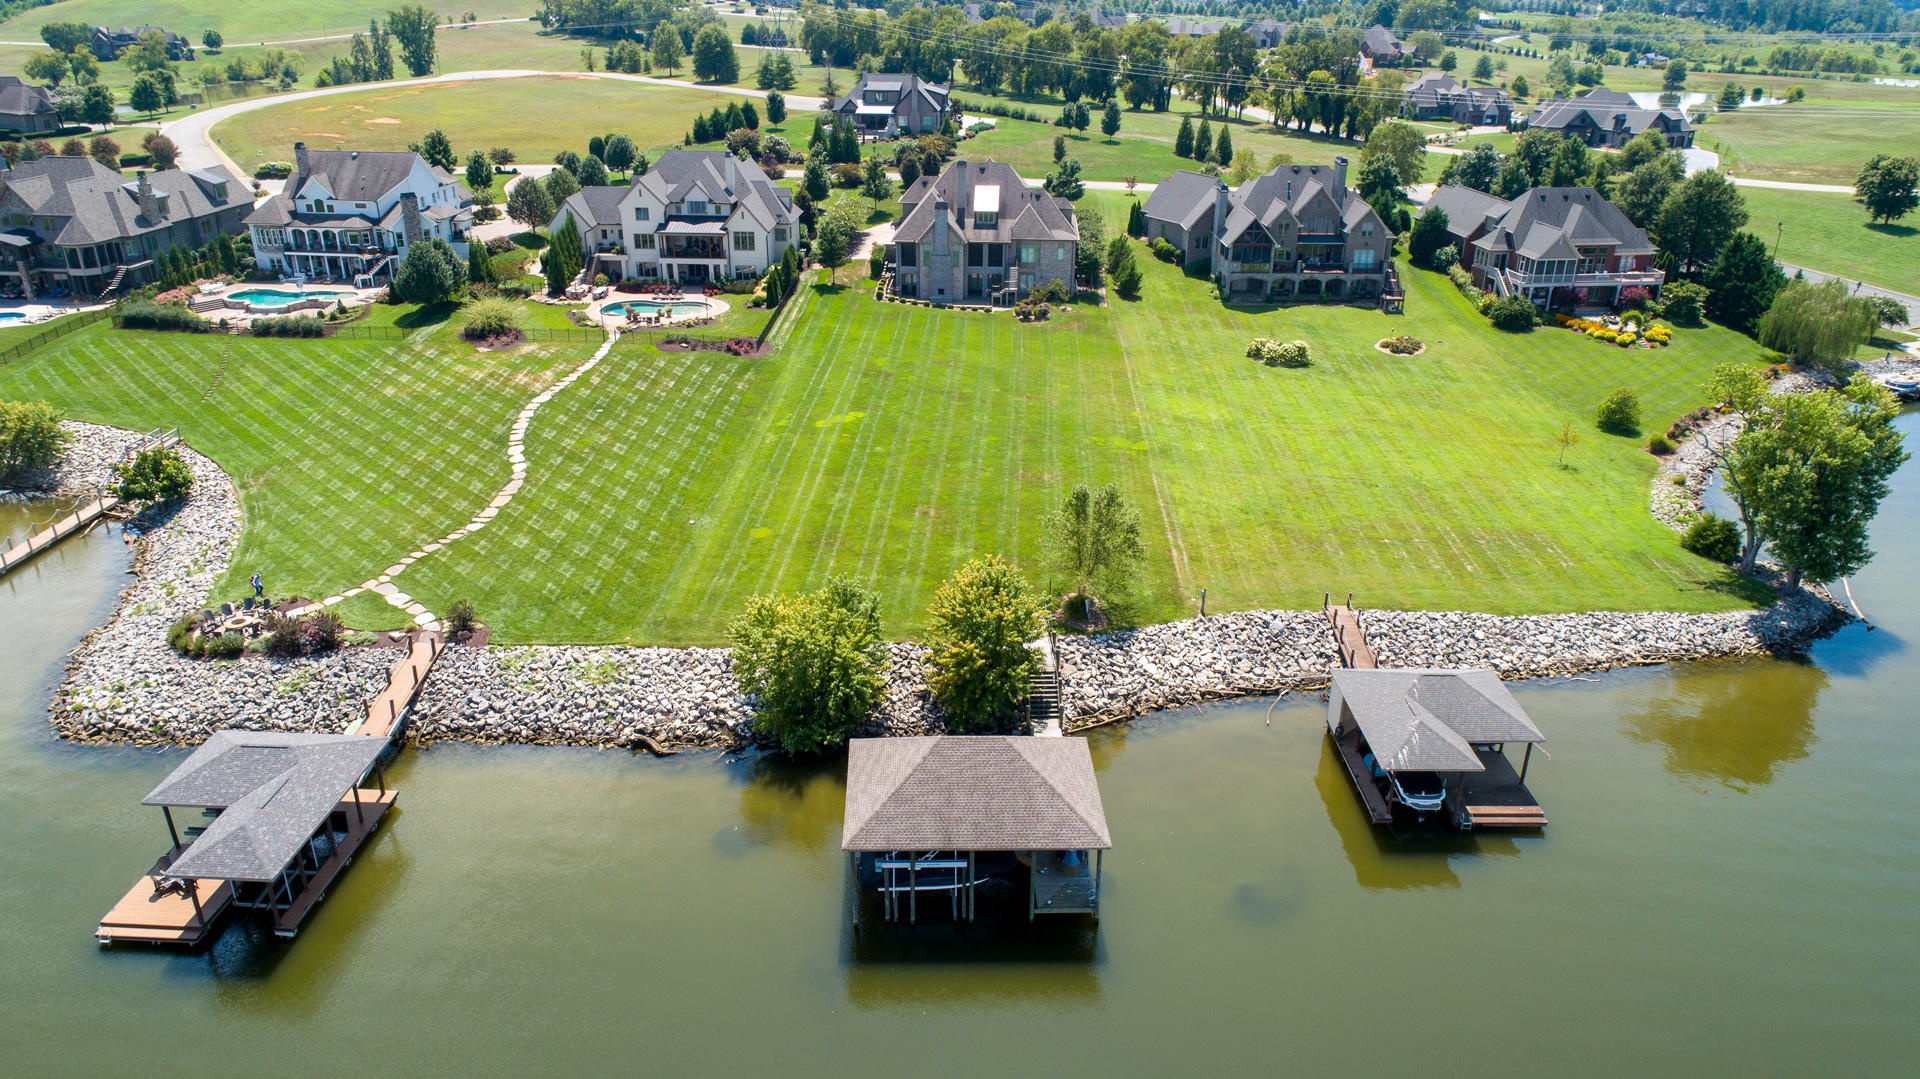 3517 Waterside Way: